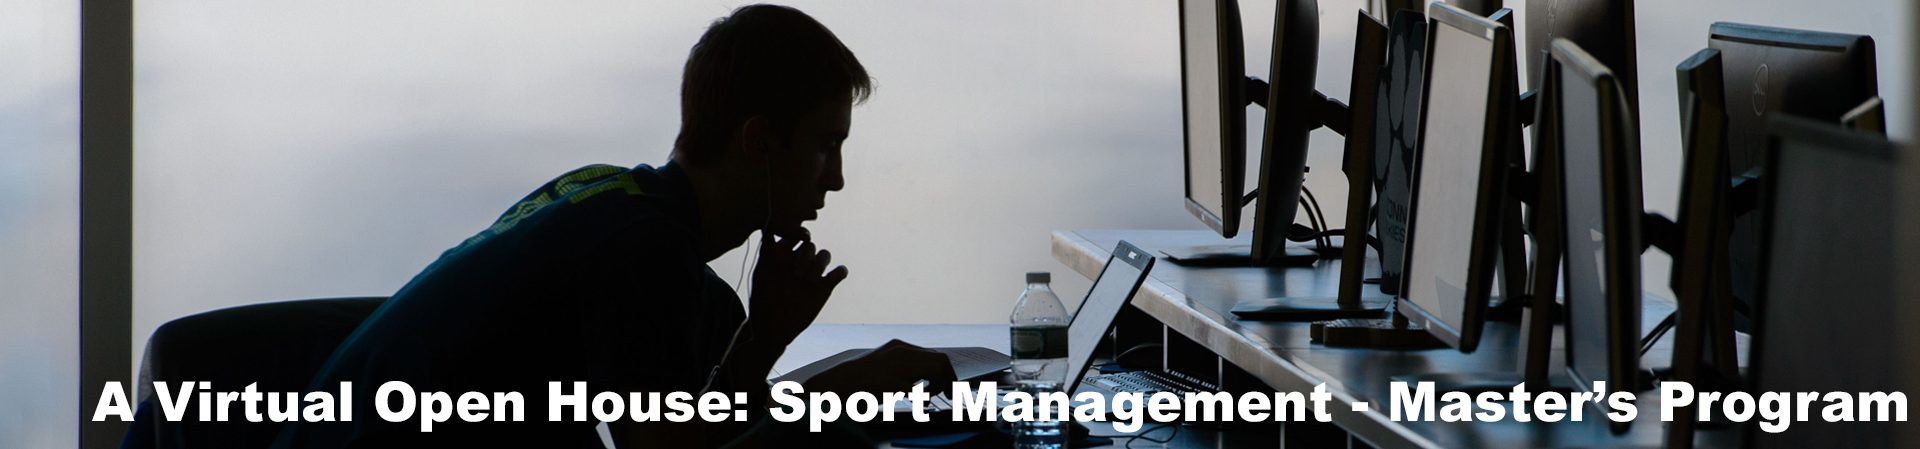 sport management master's student looking at laptop